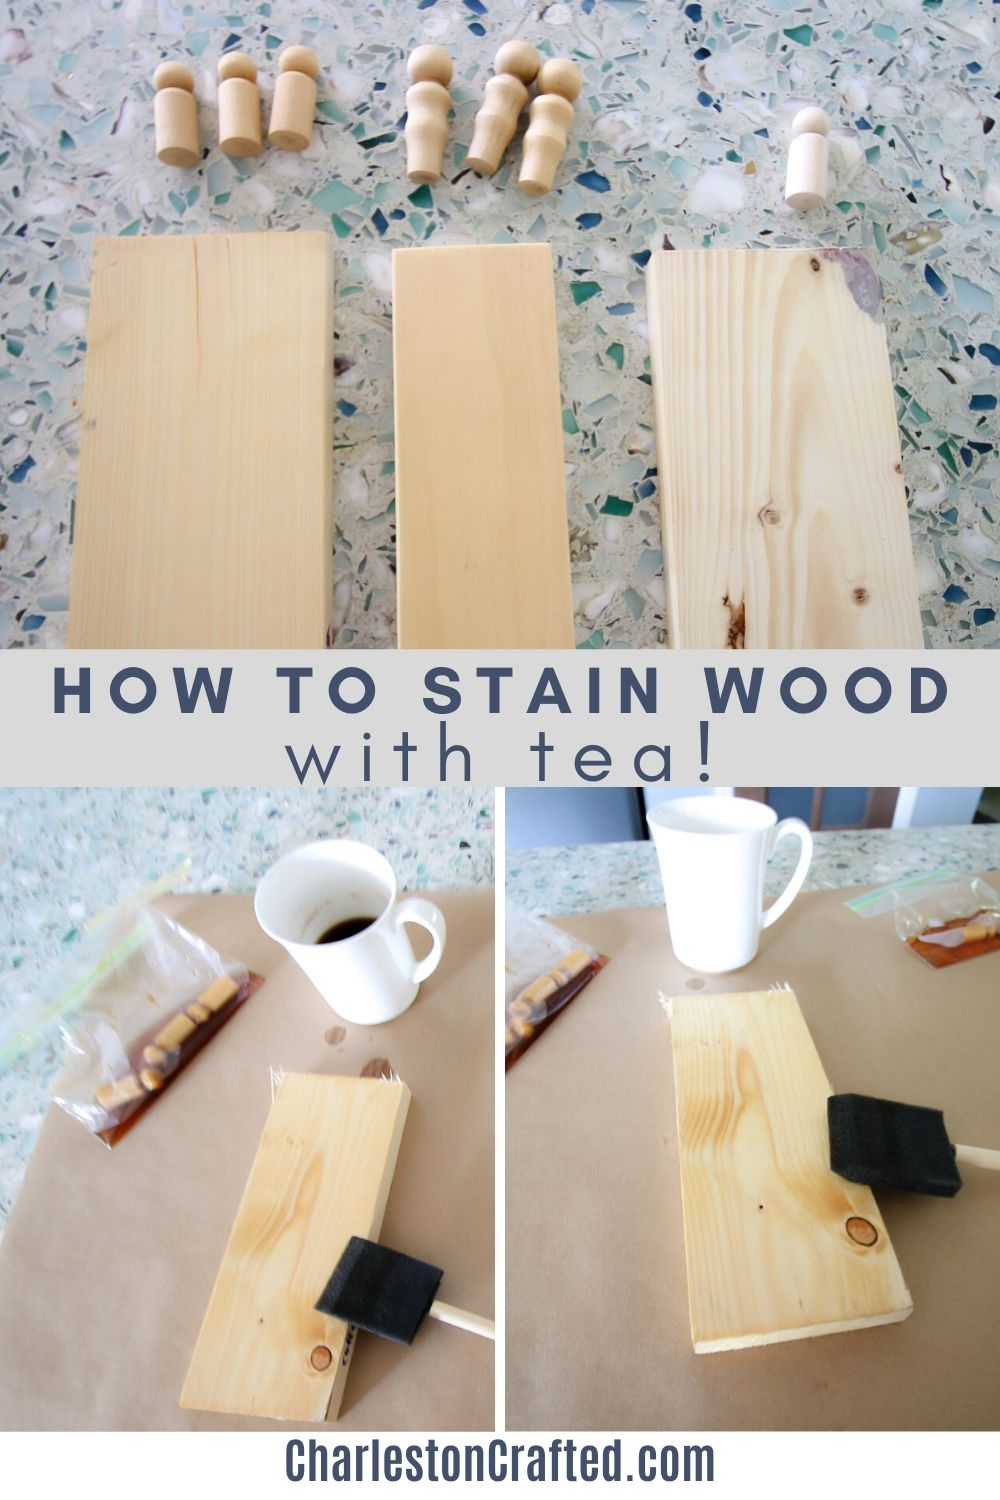 How to stain wood with tea